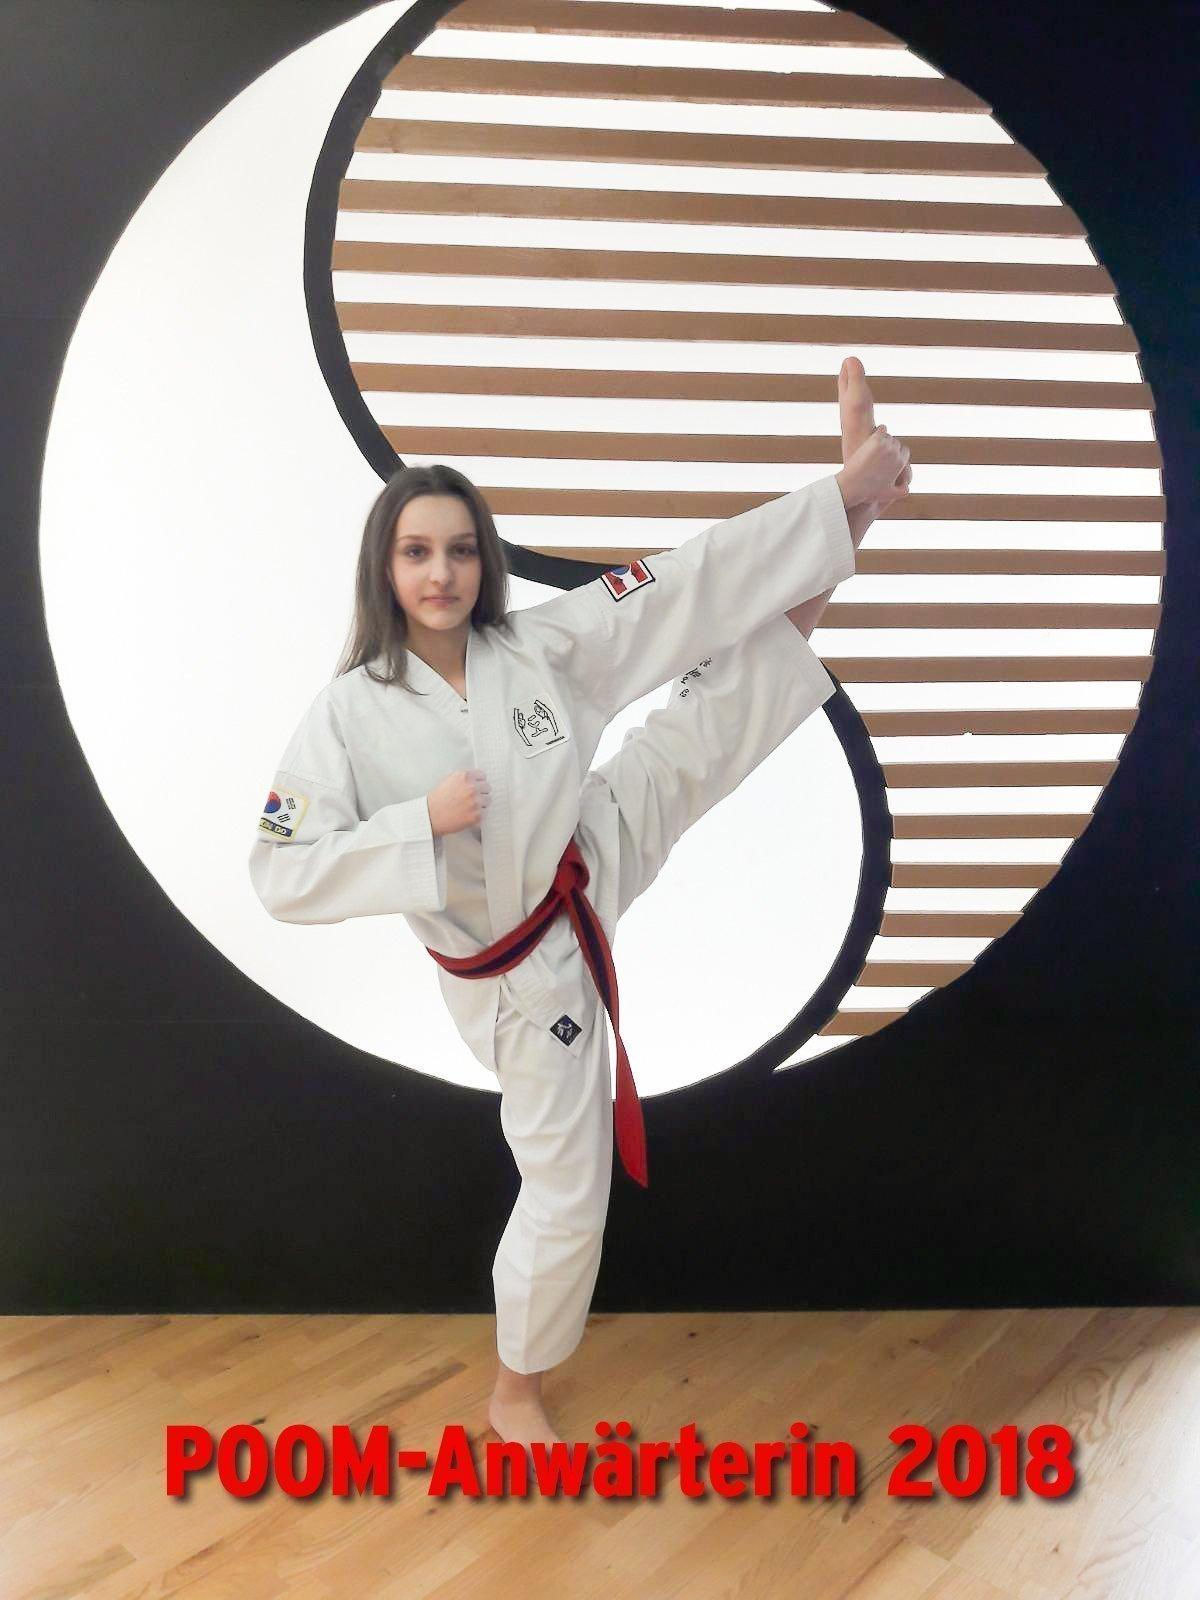 YOUNG-UNG Taekwondo Bulgarien Camp Sanja Despotovic Poom